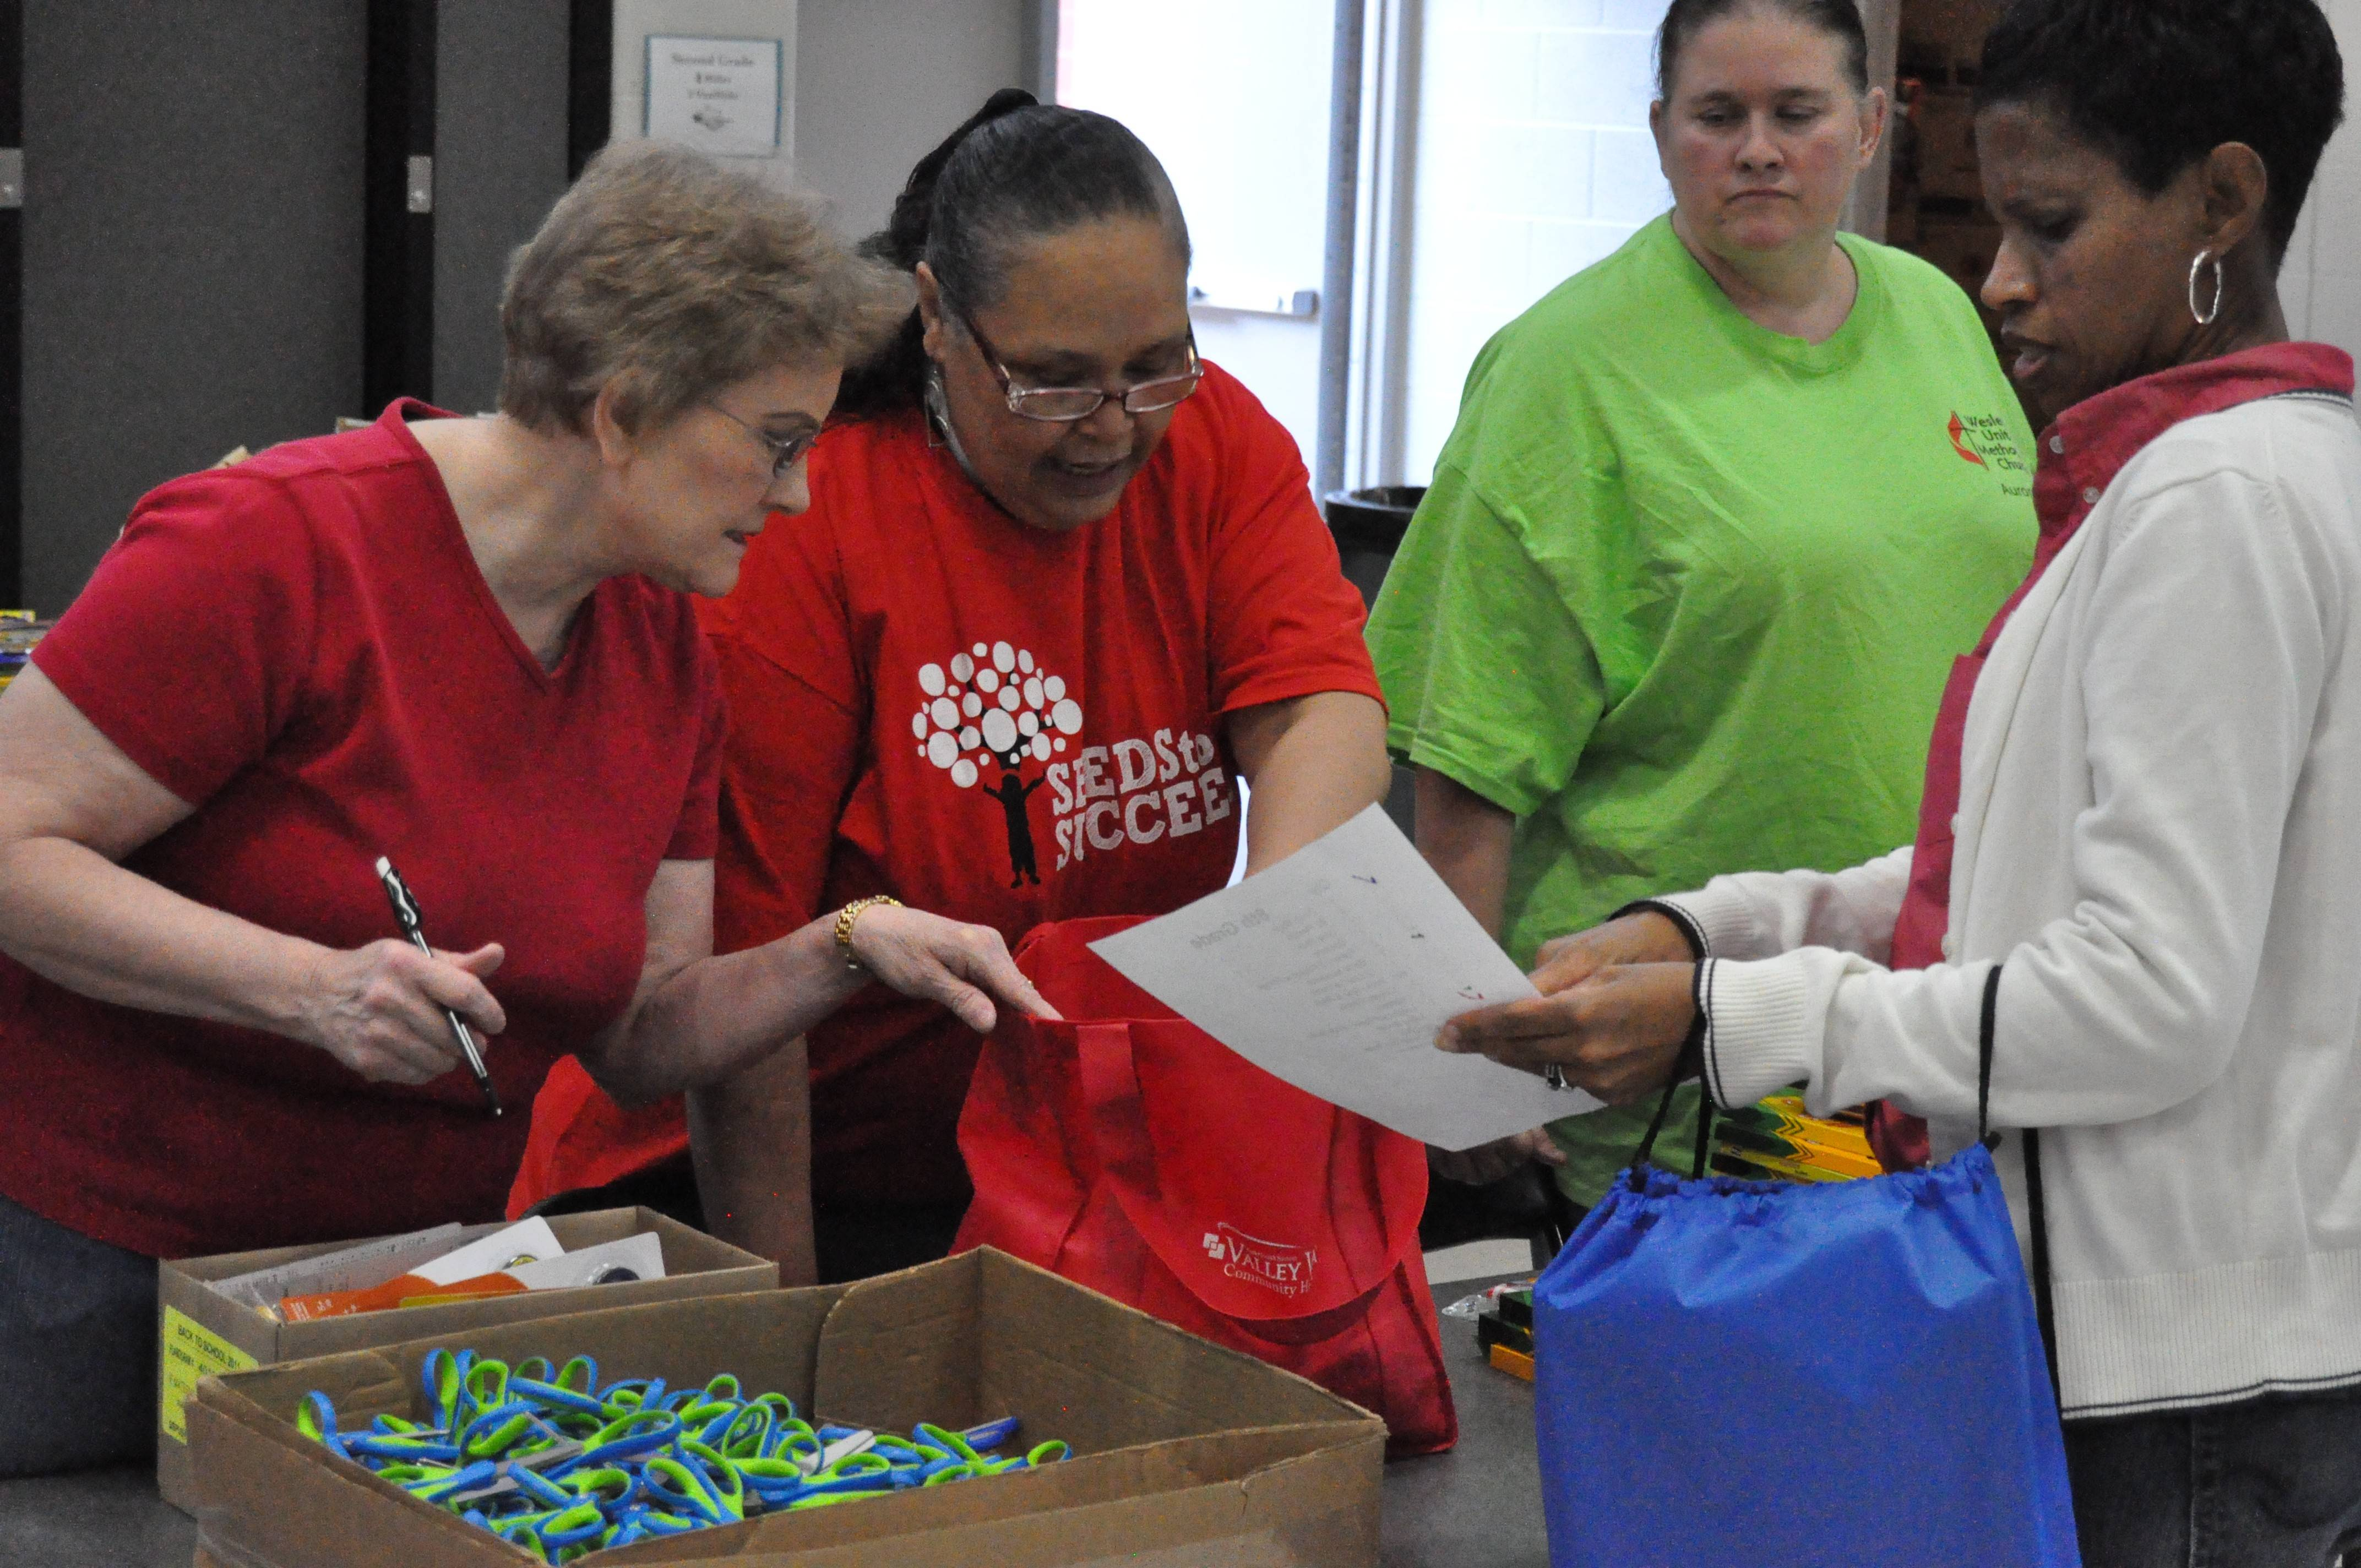 Karen Whipple, left, and the Rev. Deborah Tinsley Taylor, center, pastor at Fourth Street United Methodist Church in Aurora, were among the volunteers last year distributing donated school supplies at Greenman Elementary School in Aurora. This year's giveaway will be Saturday, Aug. 9.